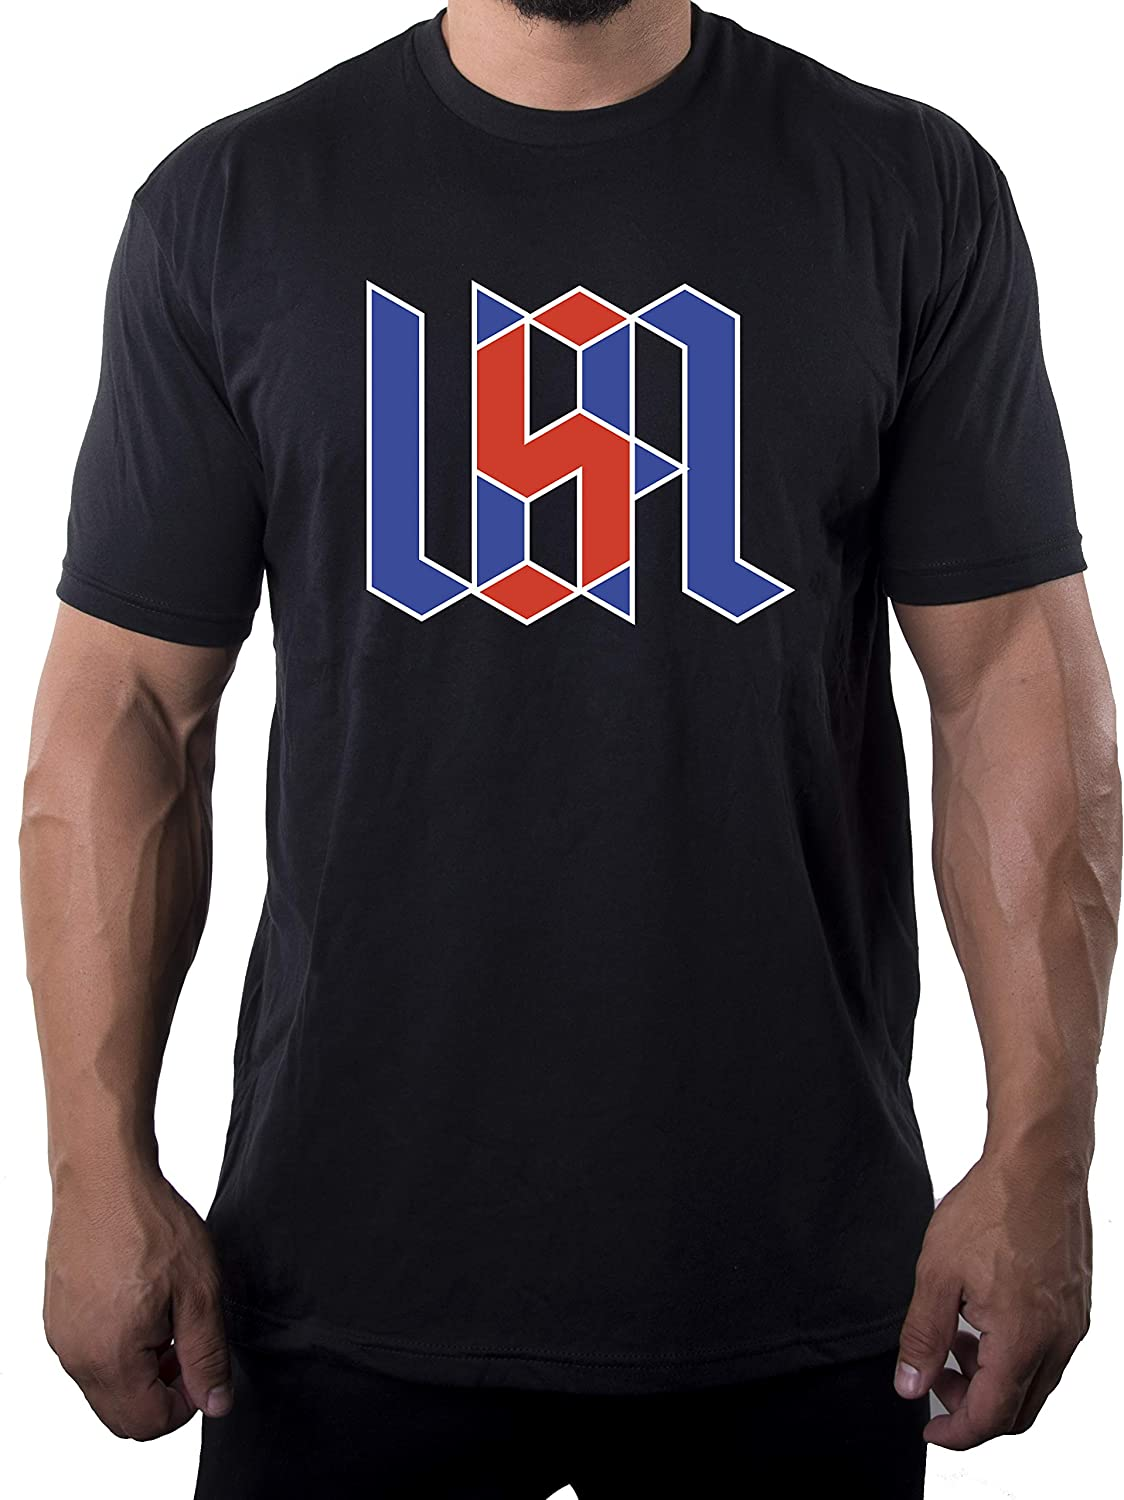 Mato & Hash USA T-Shirts, Men's 4th of July Shirts, Red White and Blue Patriotic Shirts